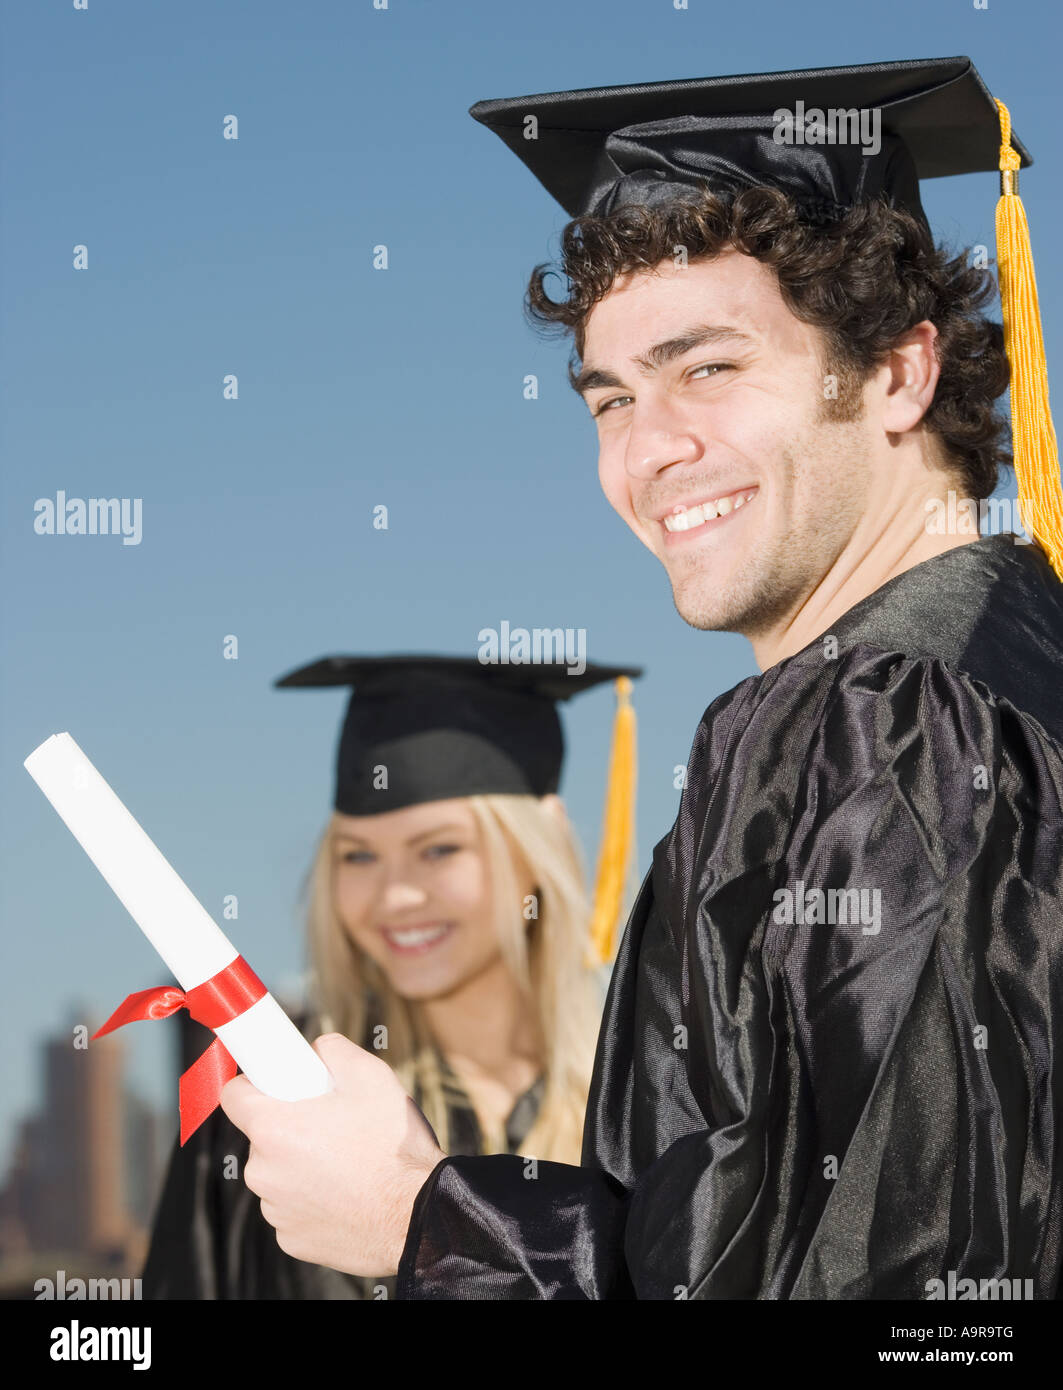 Man wearing graduation cap and gown with diploma Stock Photo ...